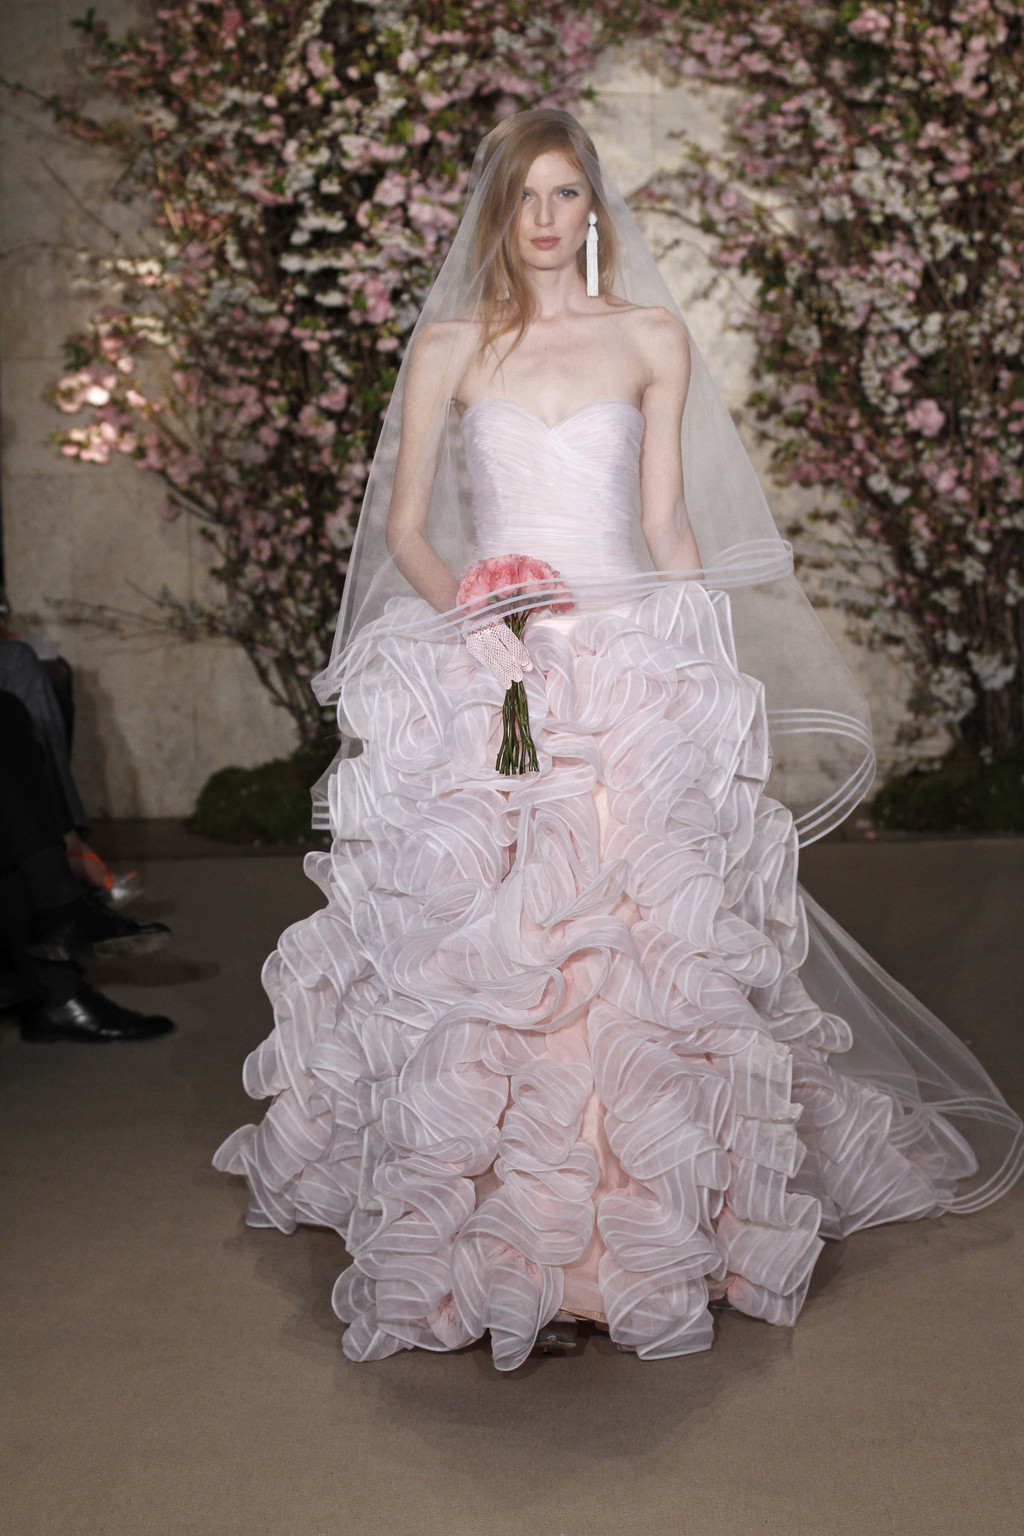 Oscar-de-la-renta-bridal-2012-collection-wedding-dress-trend-2012-textured-wedding-dress-stapless-ball-gown-pink-wedding-dress-bridal-couture-wedding-party-blog.full